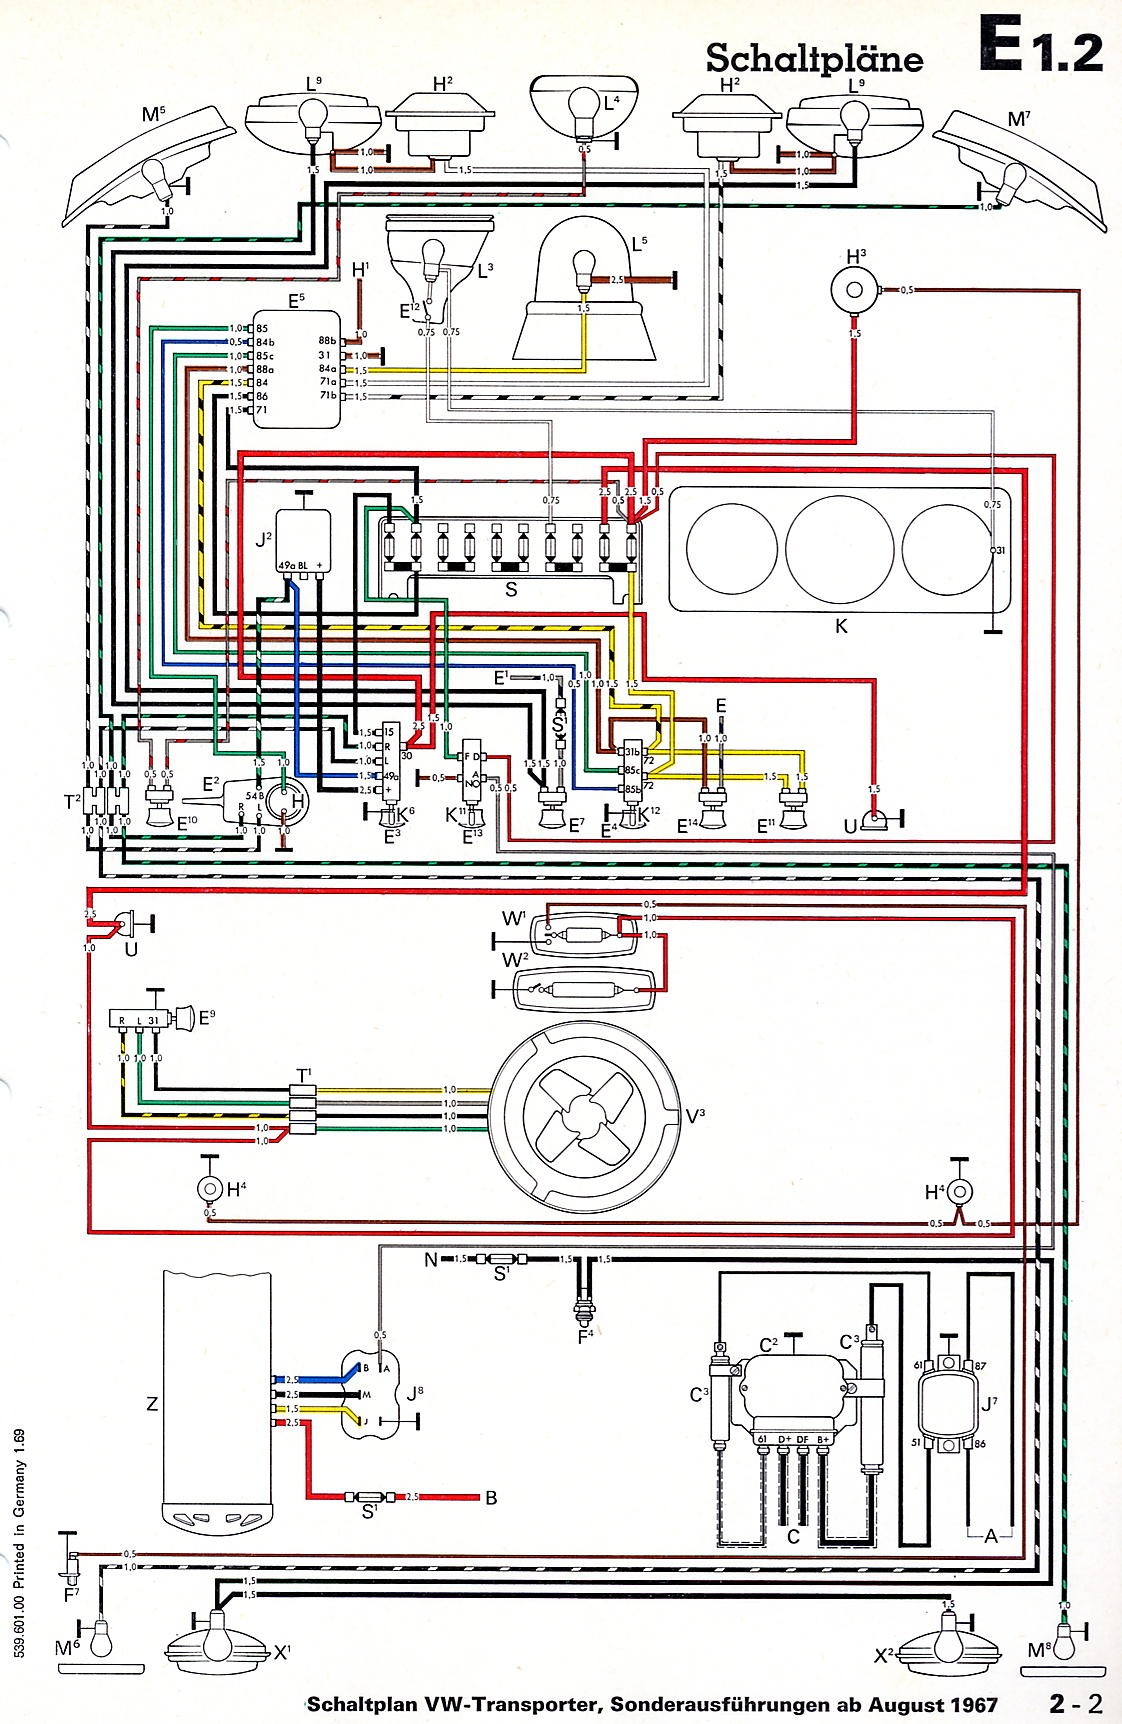 2001 Vw Beetle 2 0 Engine Diagram 1974 Bug Wiring Page Voltage Regulator In Addition